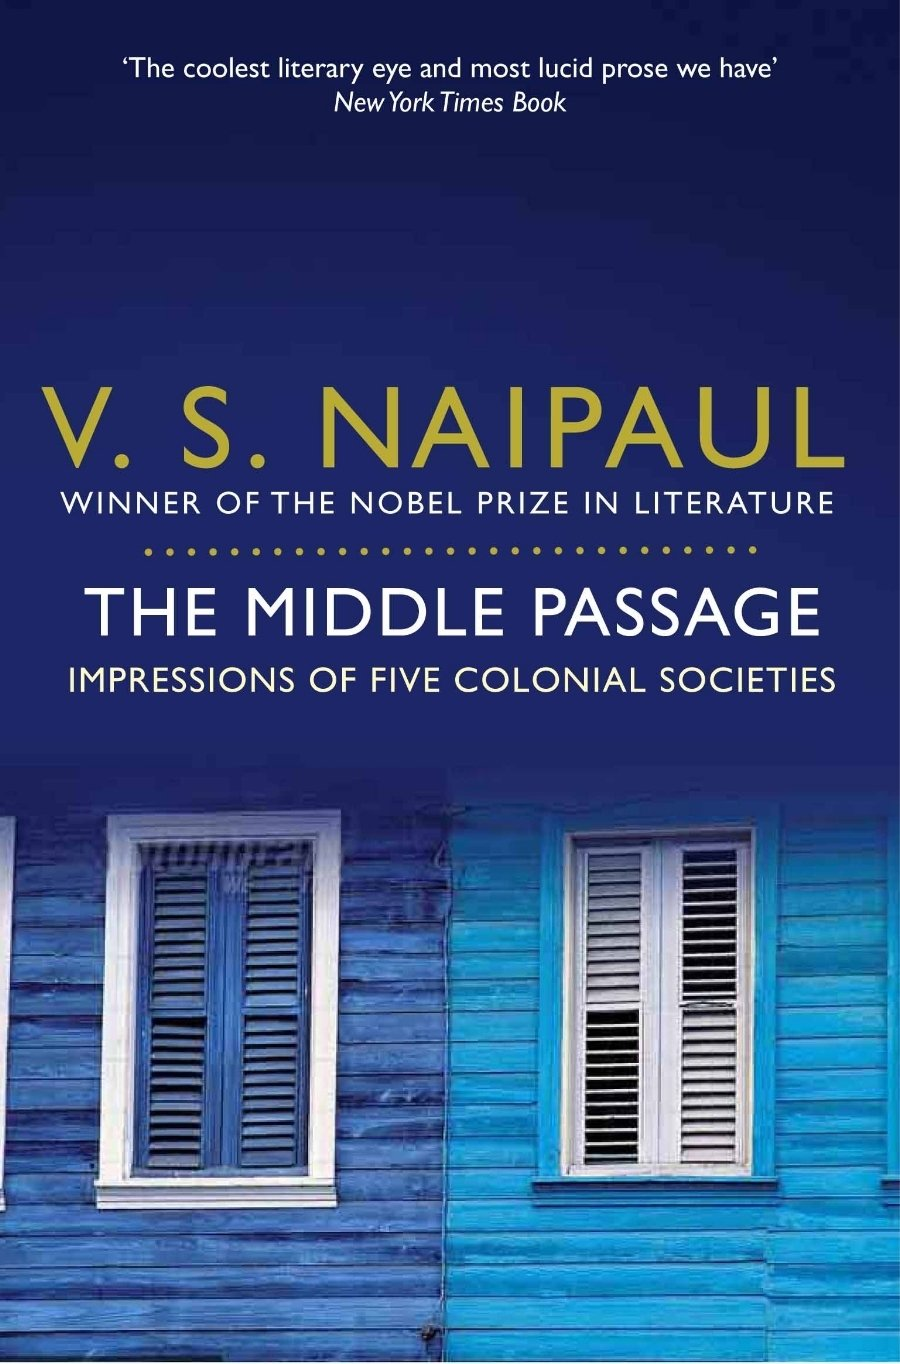 The Middle Passage: Impressions of five colonial societies